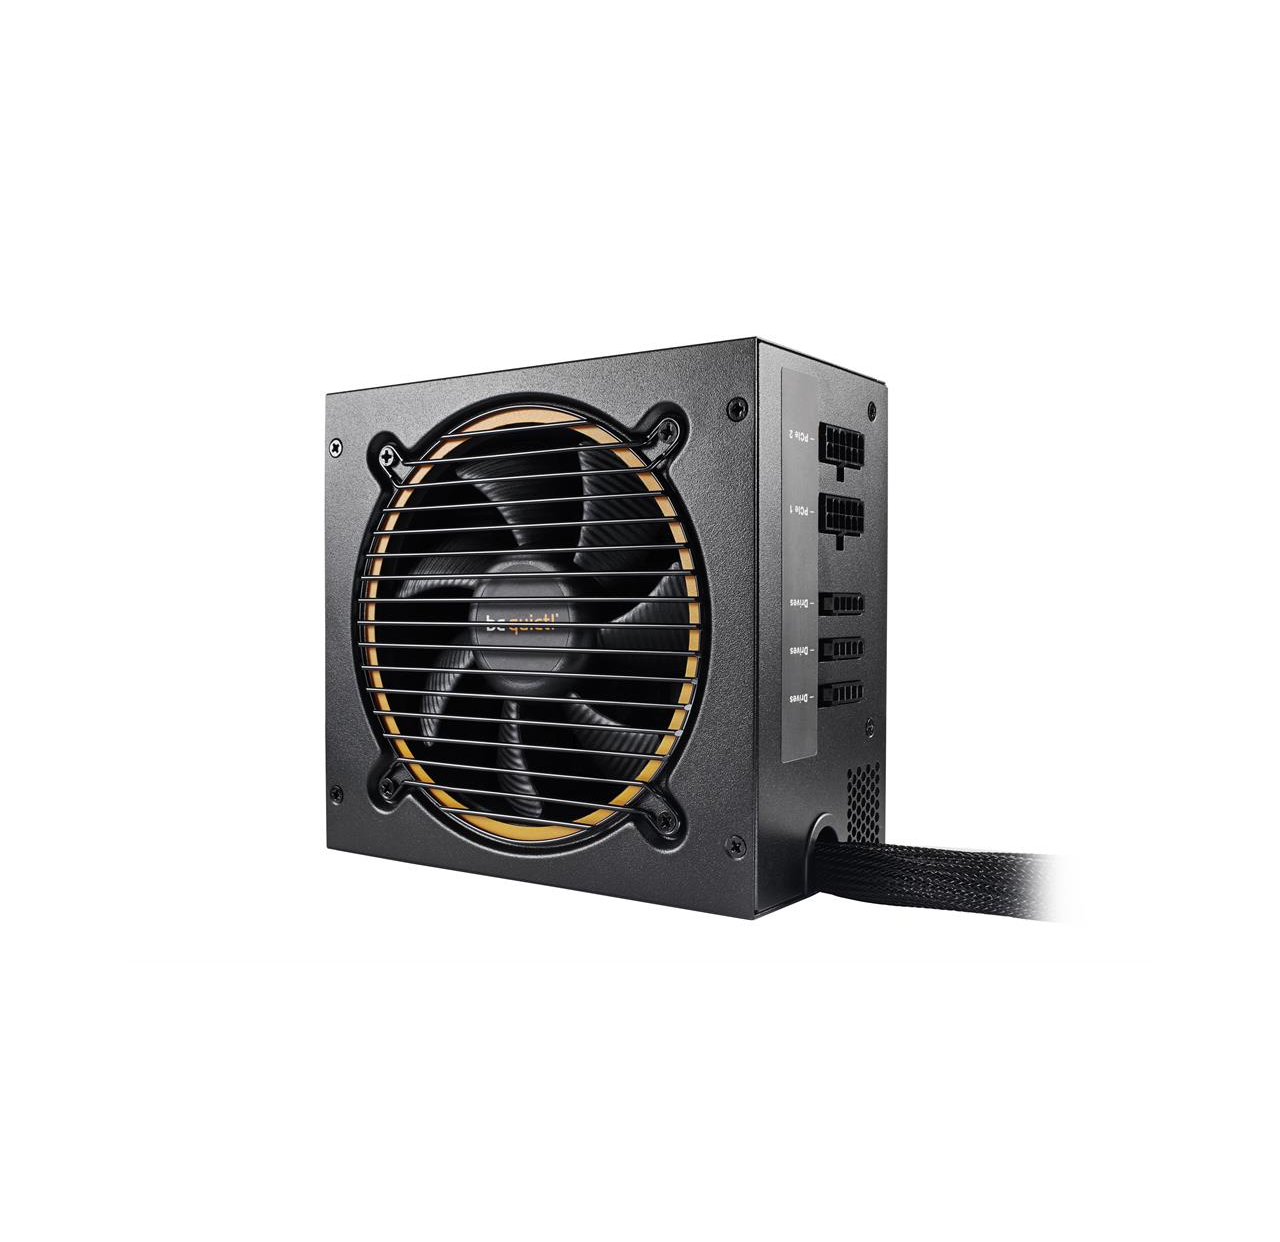 Zasilacz PC be quiet! Pure Power 11 400W CM, 80PLUS Gold, activePFC